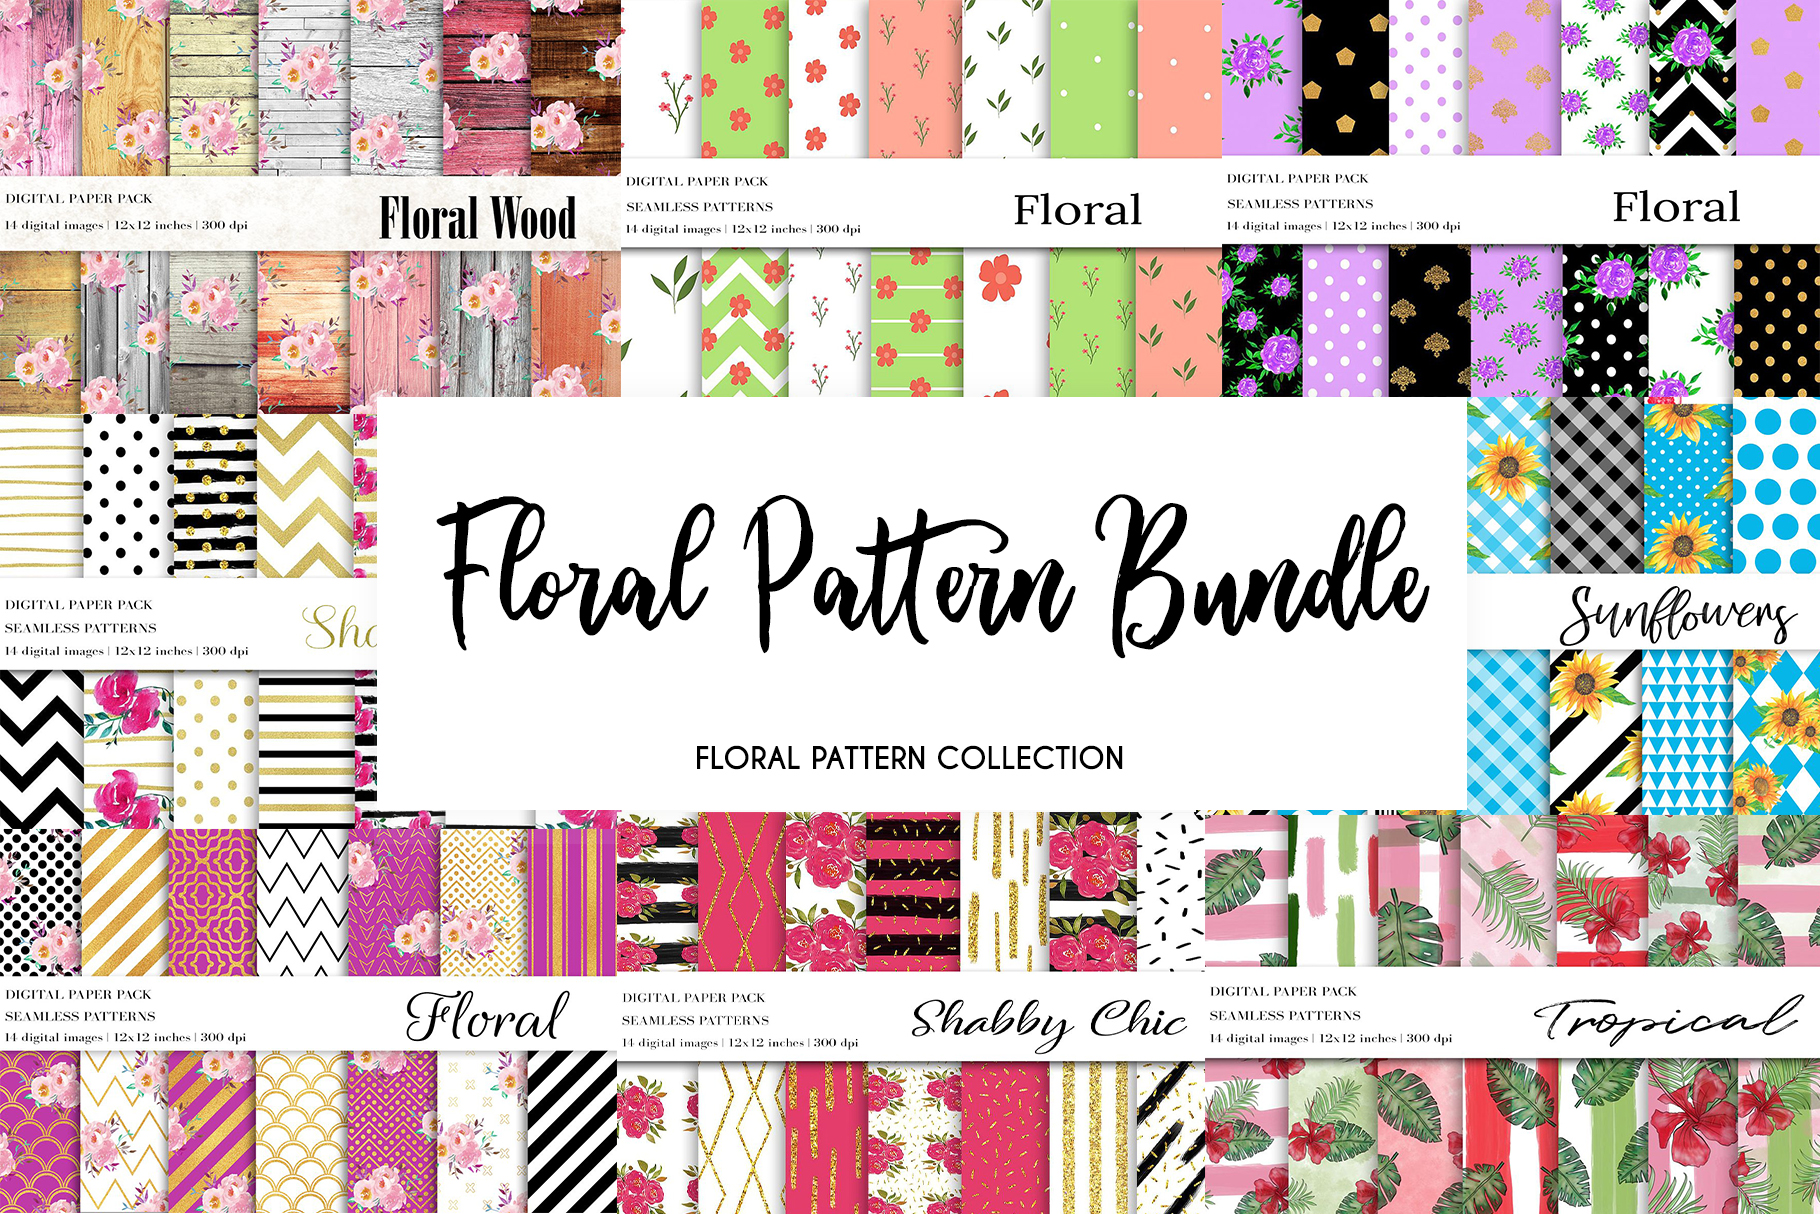 Download Free Floral Pattern Bundle Floral Patterns Graphic By Bonadesigns for Cricut Explore, Silhouette and other cutting machines.